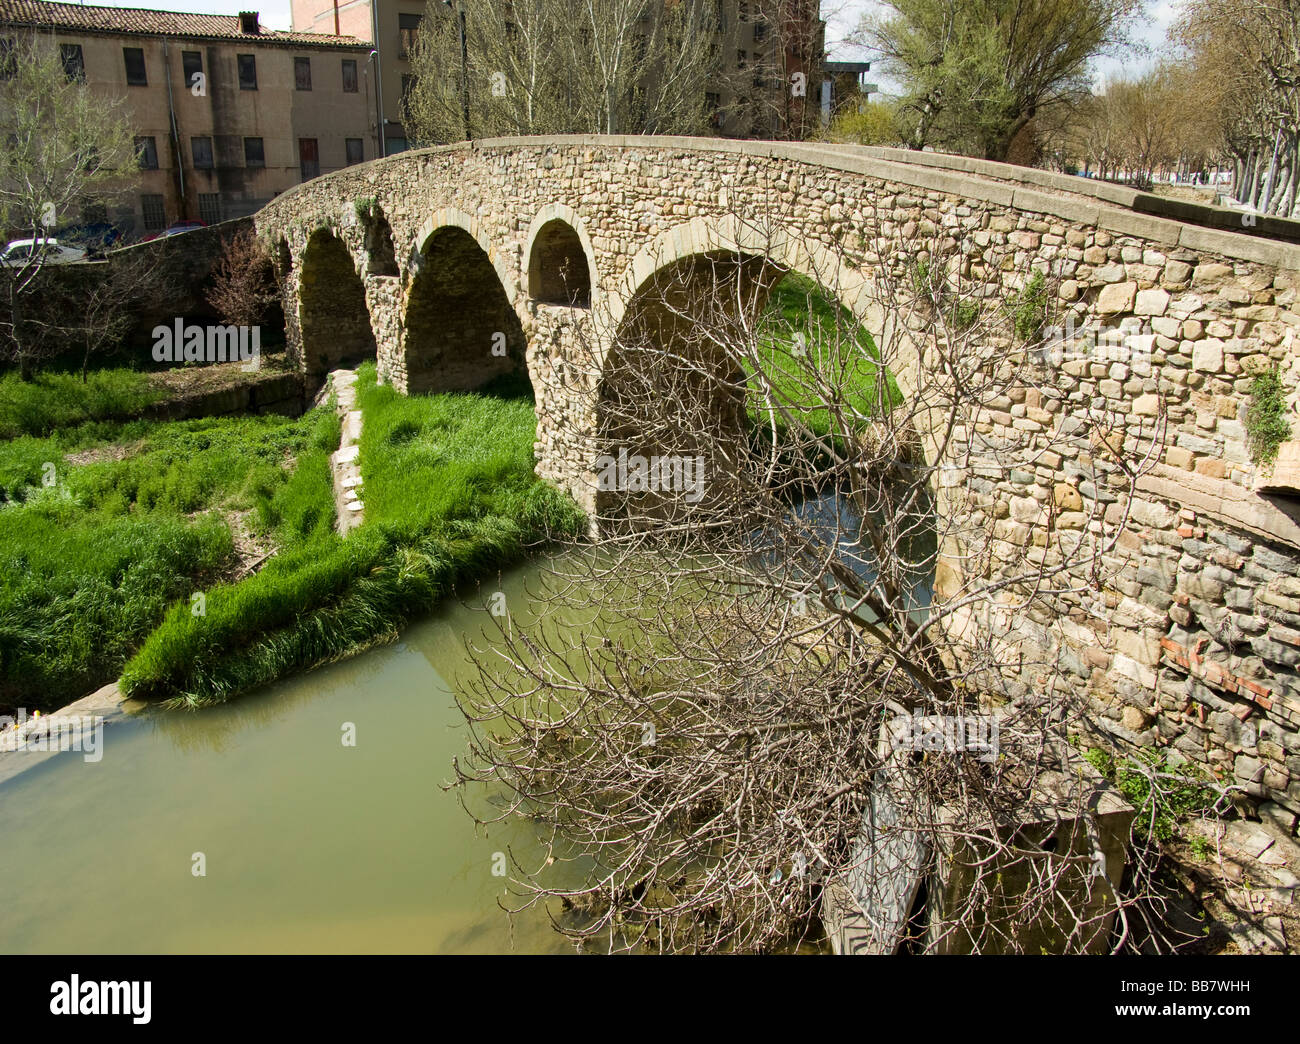 Spain Vic Old town and Roman bridge - Stock Image